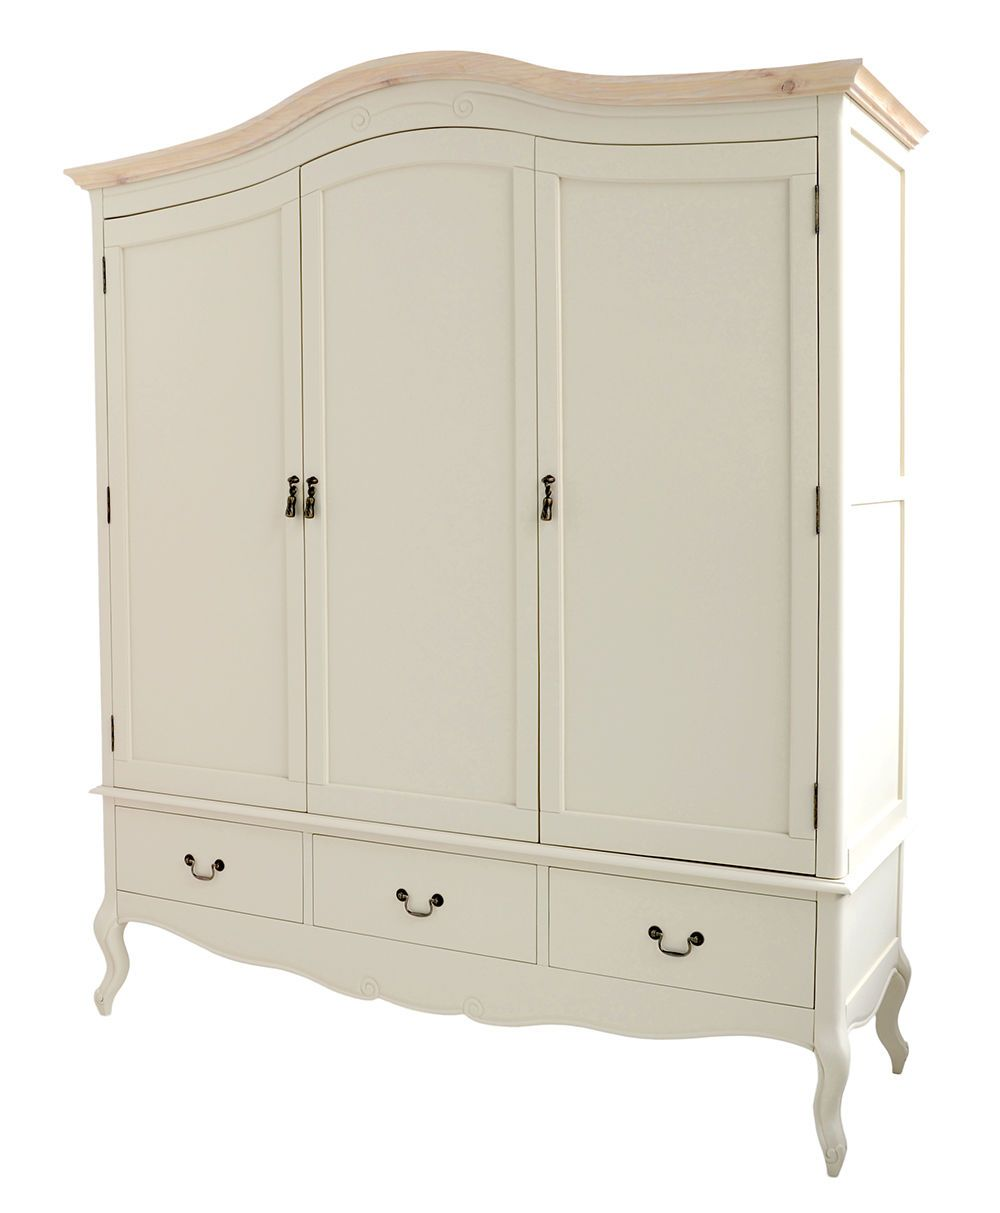 Shabby chic champagne furniture cream chest of drawers dressing - Details About Shabby Chic Champagne Furniture Cream Chest Of Drawers Dressing Table Chests